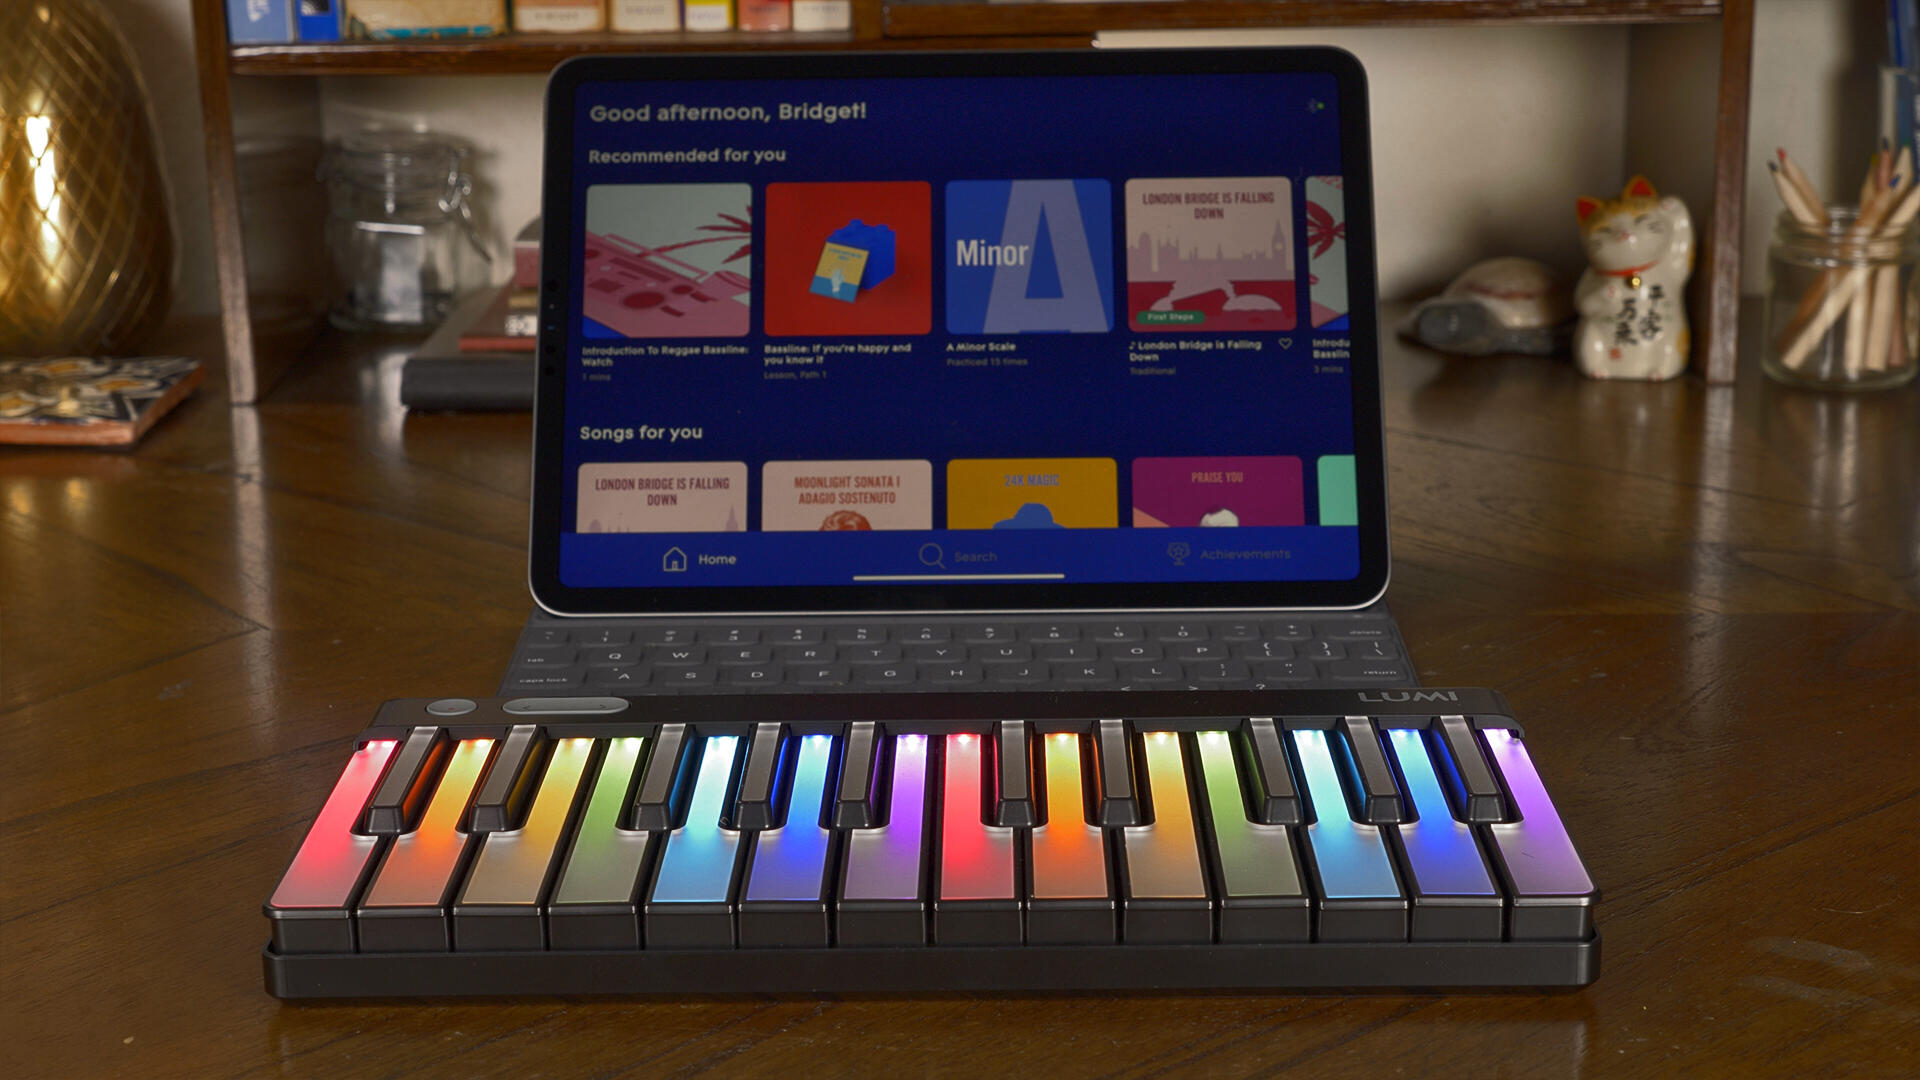 Video: This rainbow keyboard teaches you music with games